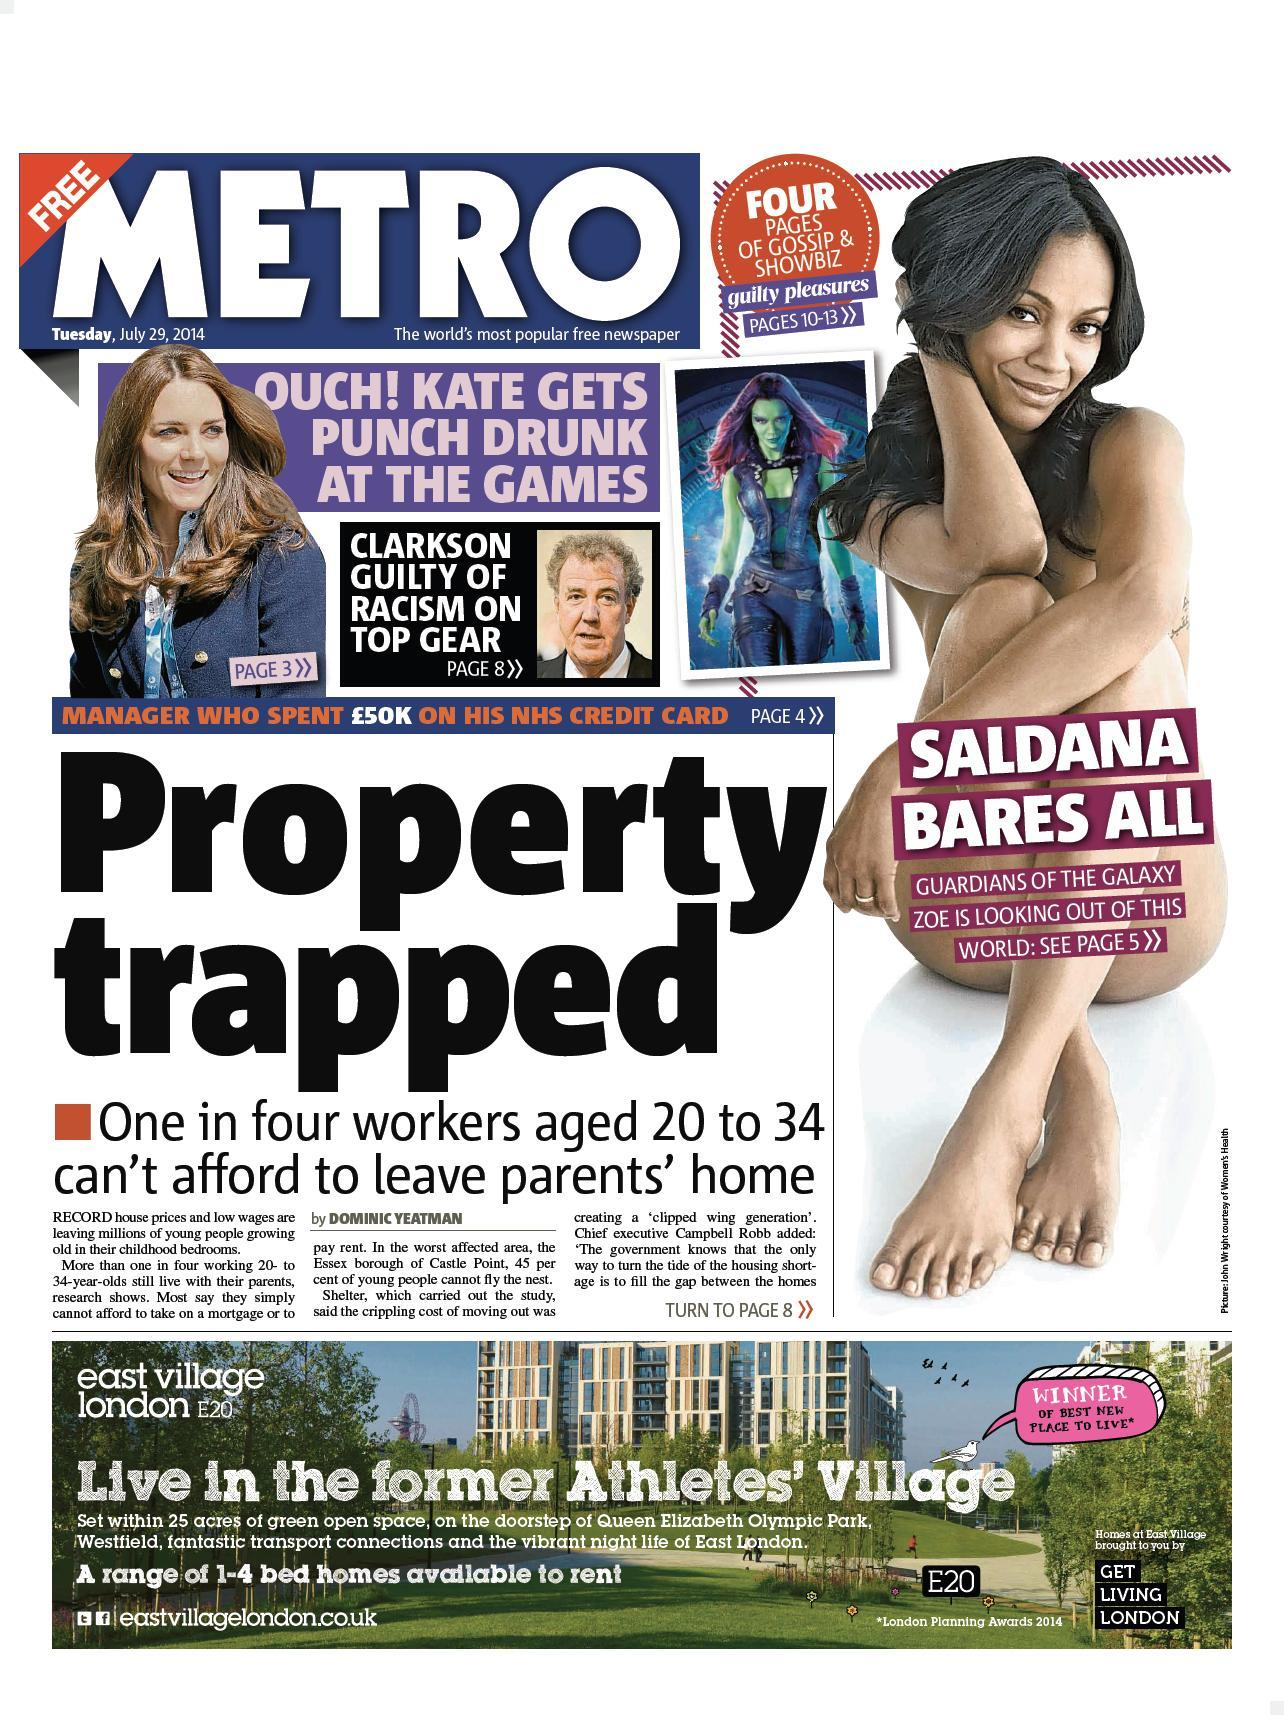 """Tuesday's Metro: """"Property trapped"""" http://t.co/kOkvIPpCen #TomorrowsPapersToday #BBCpapers via @suttonnick"""